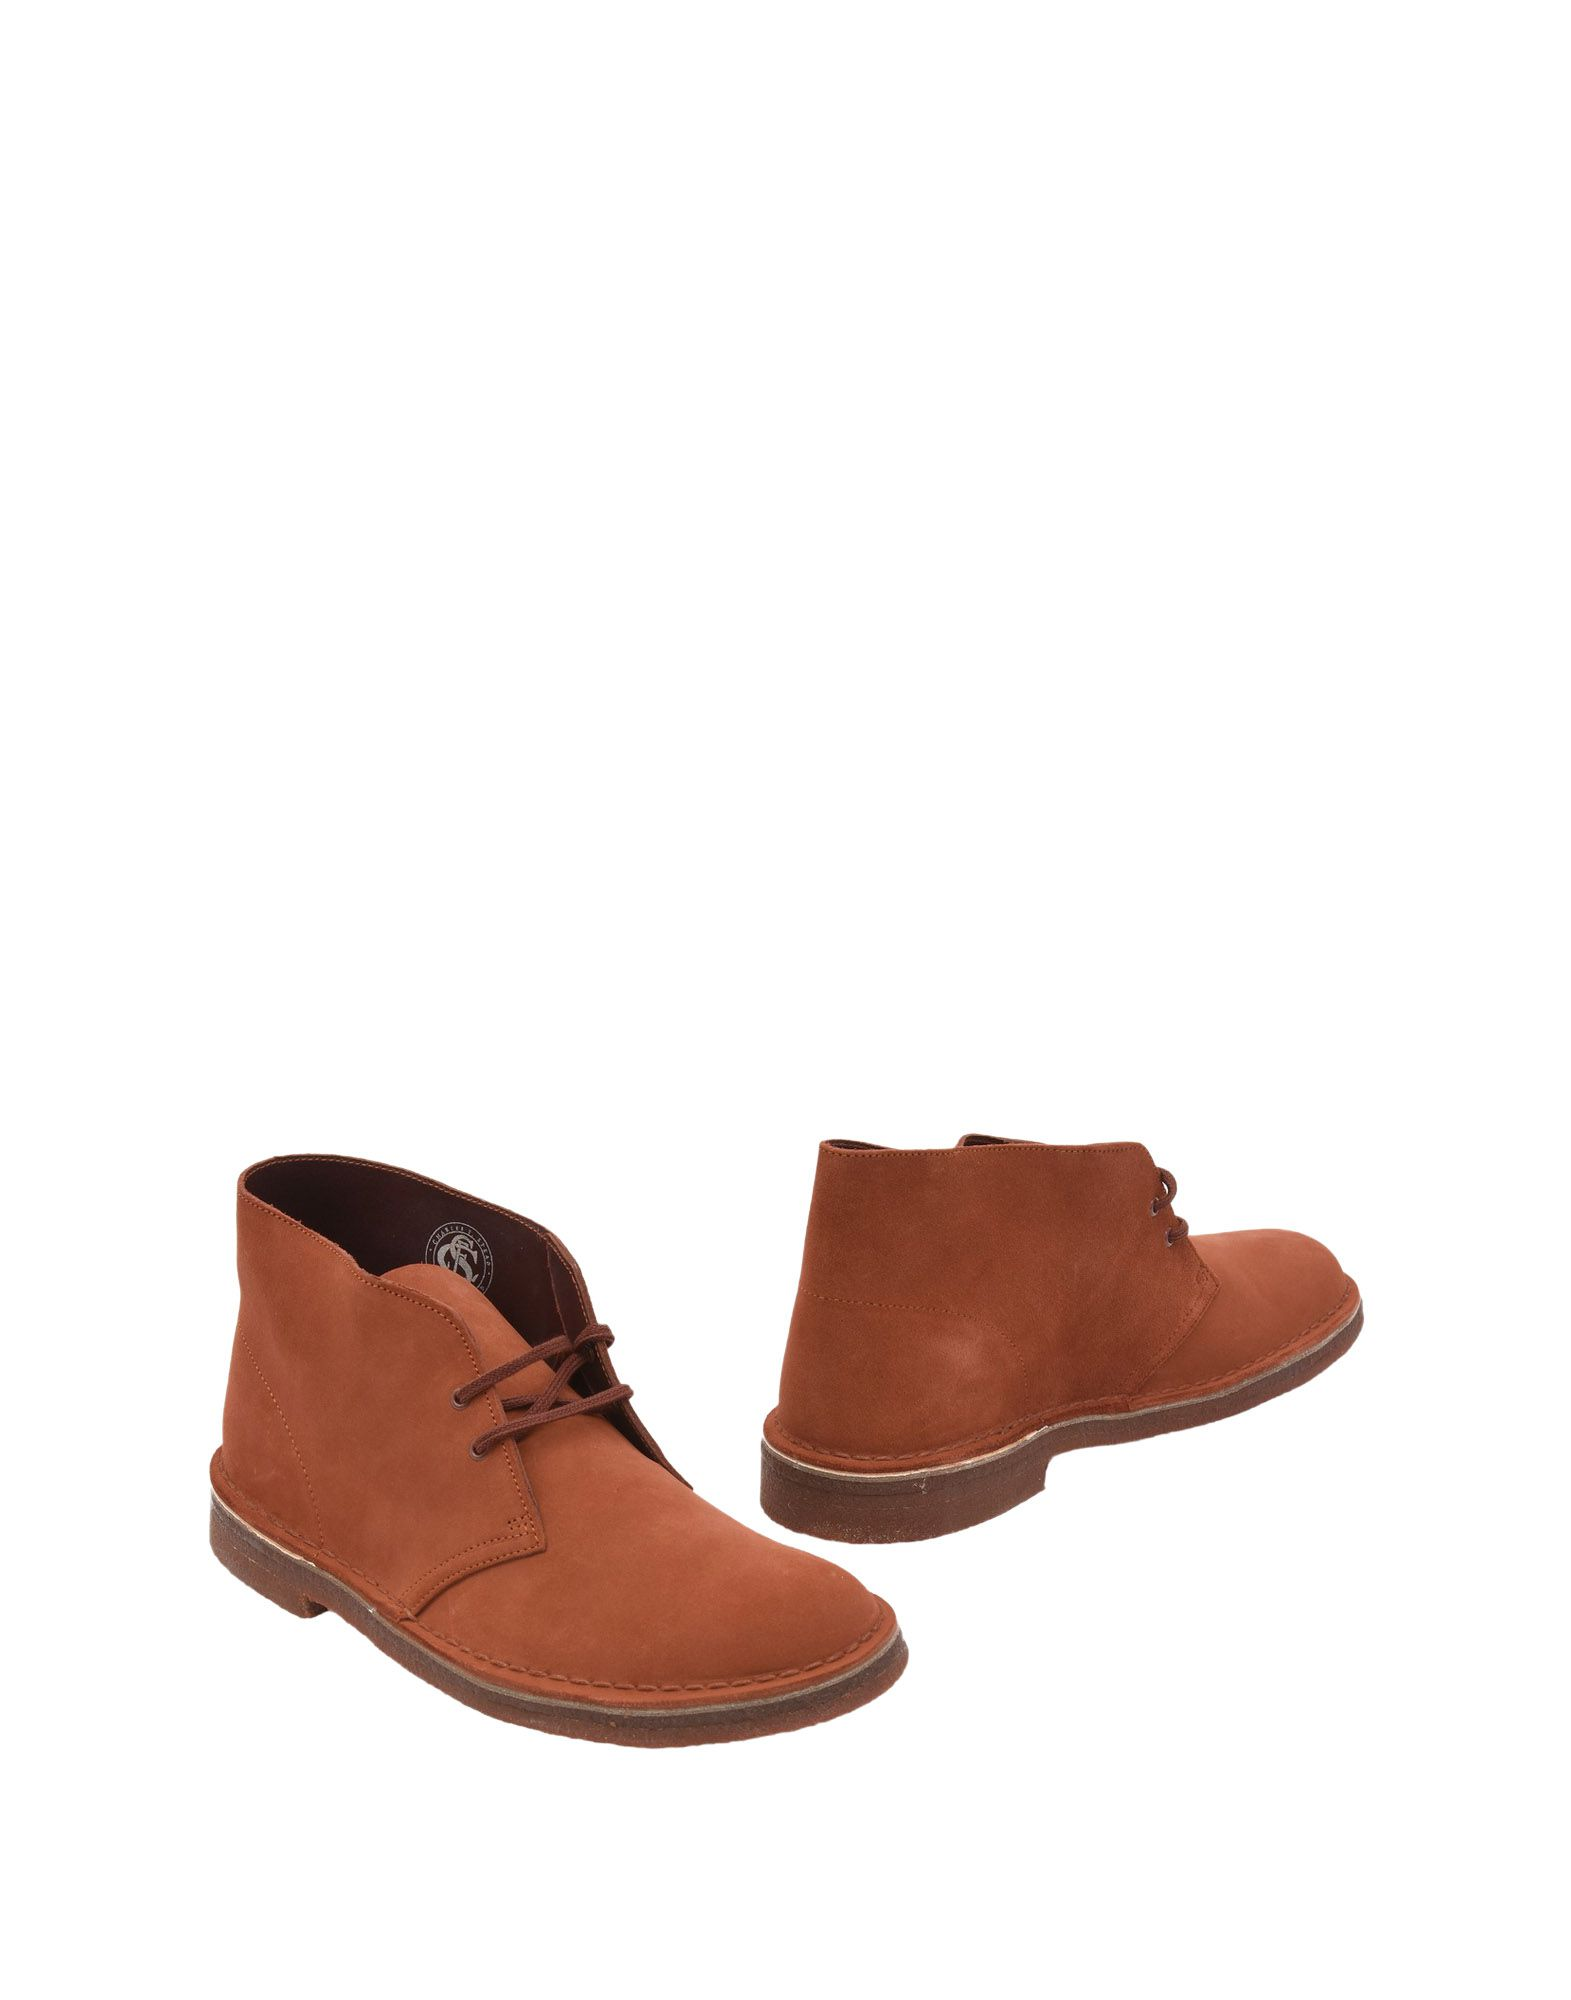 Clarks Boots United - Men Clarks Boots online on  United Boots Kingdom - 11440813JF a216b7